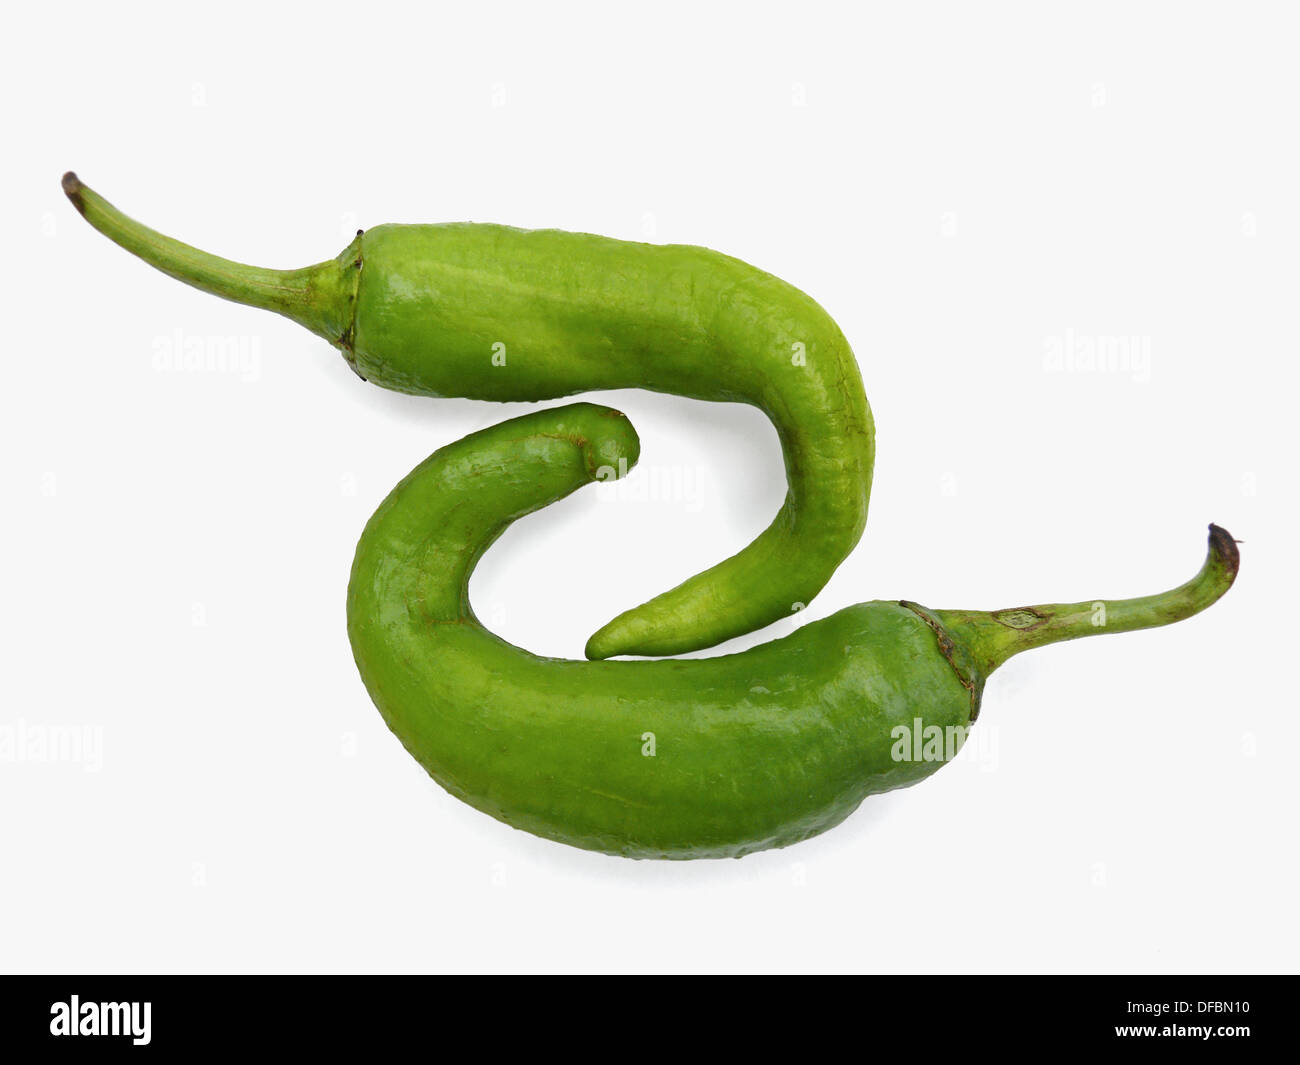 Common green Chilies are linked together. Capsicum annuum. Pune, Maharashtra, India. - Stock Image